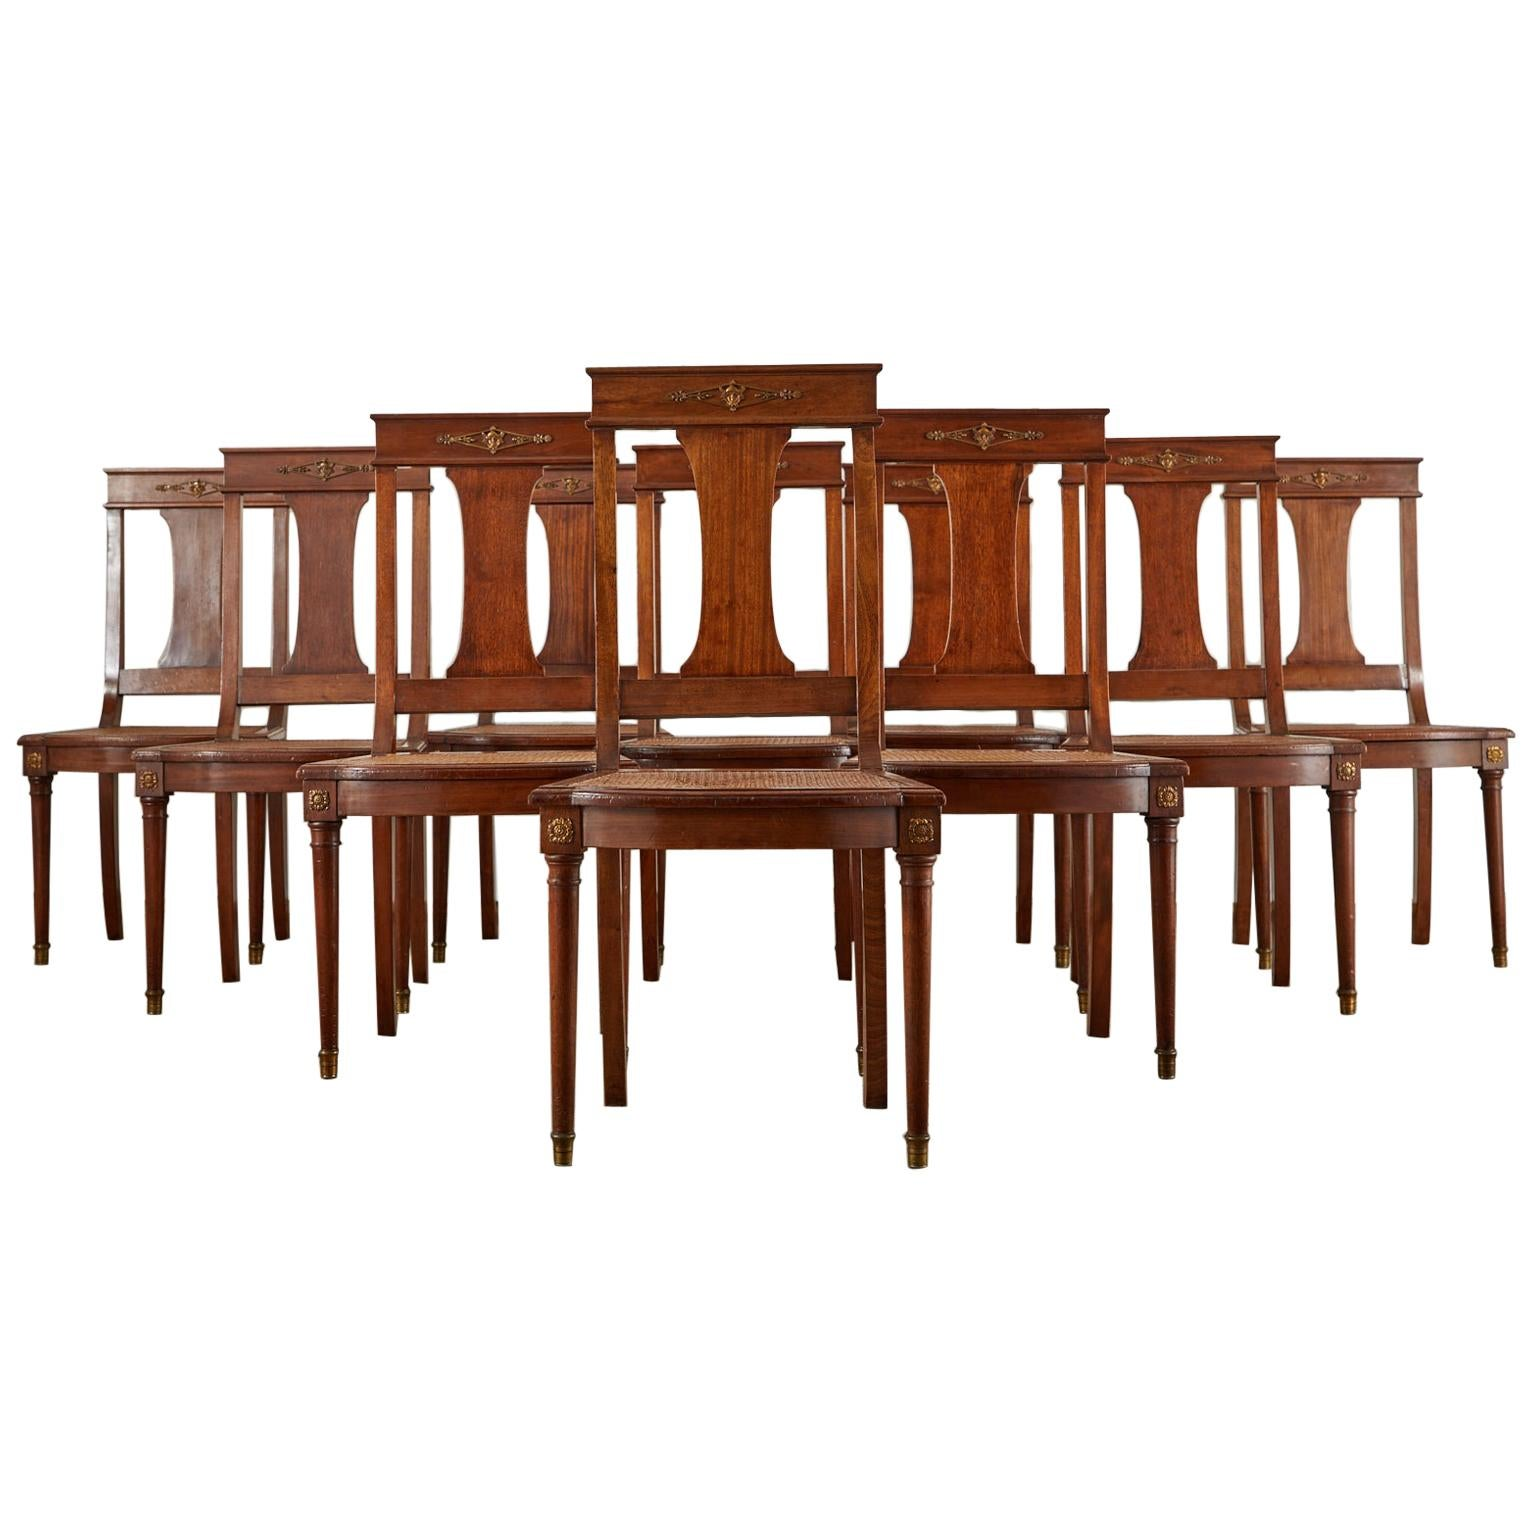 Set of Ten French Empire Mahogany Caned Dining Chairs